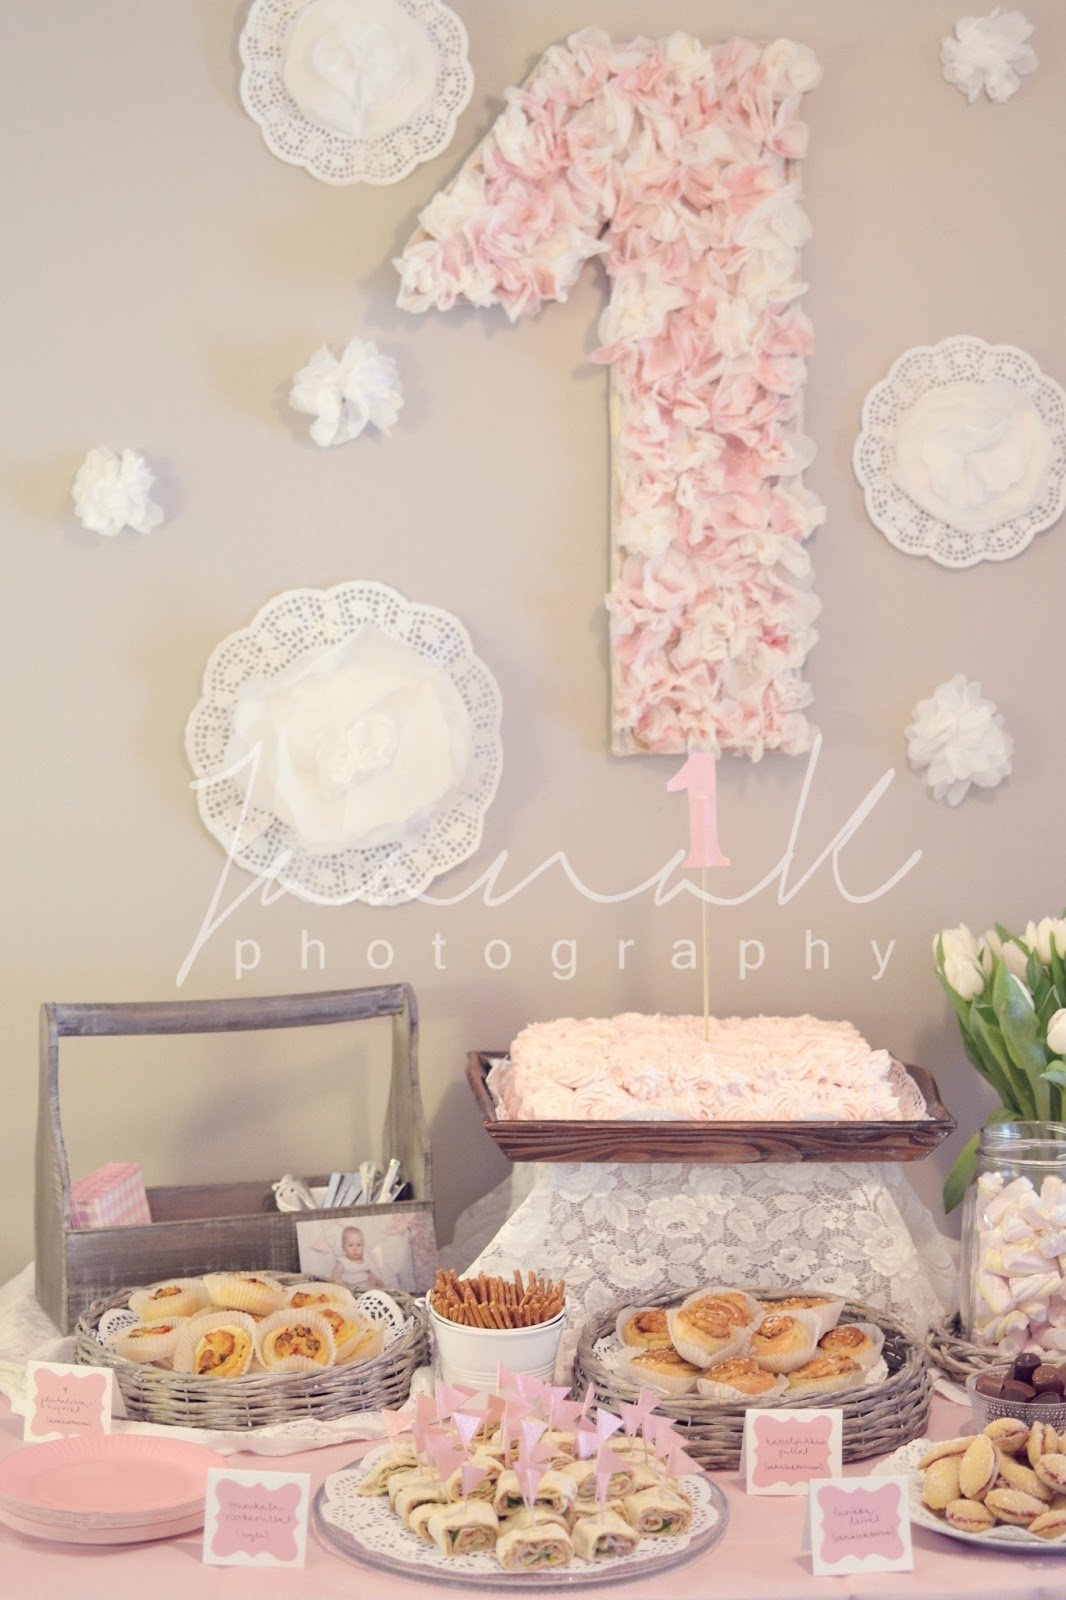 10 Unique Girl First Birthday Party Ideas shabby chic one year birthday party from sweet living and things 2020